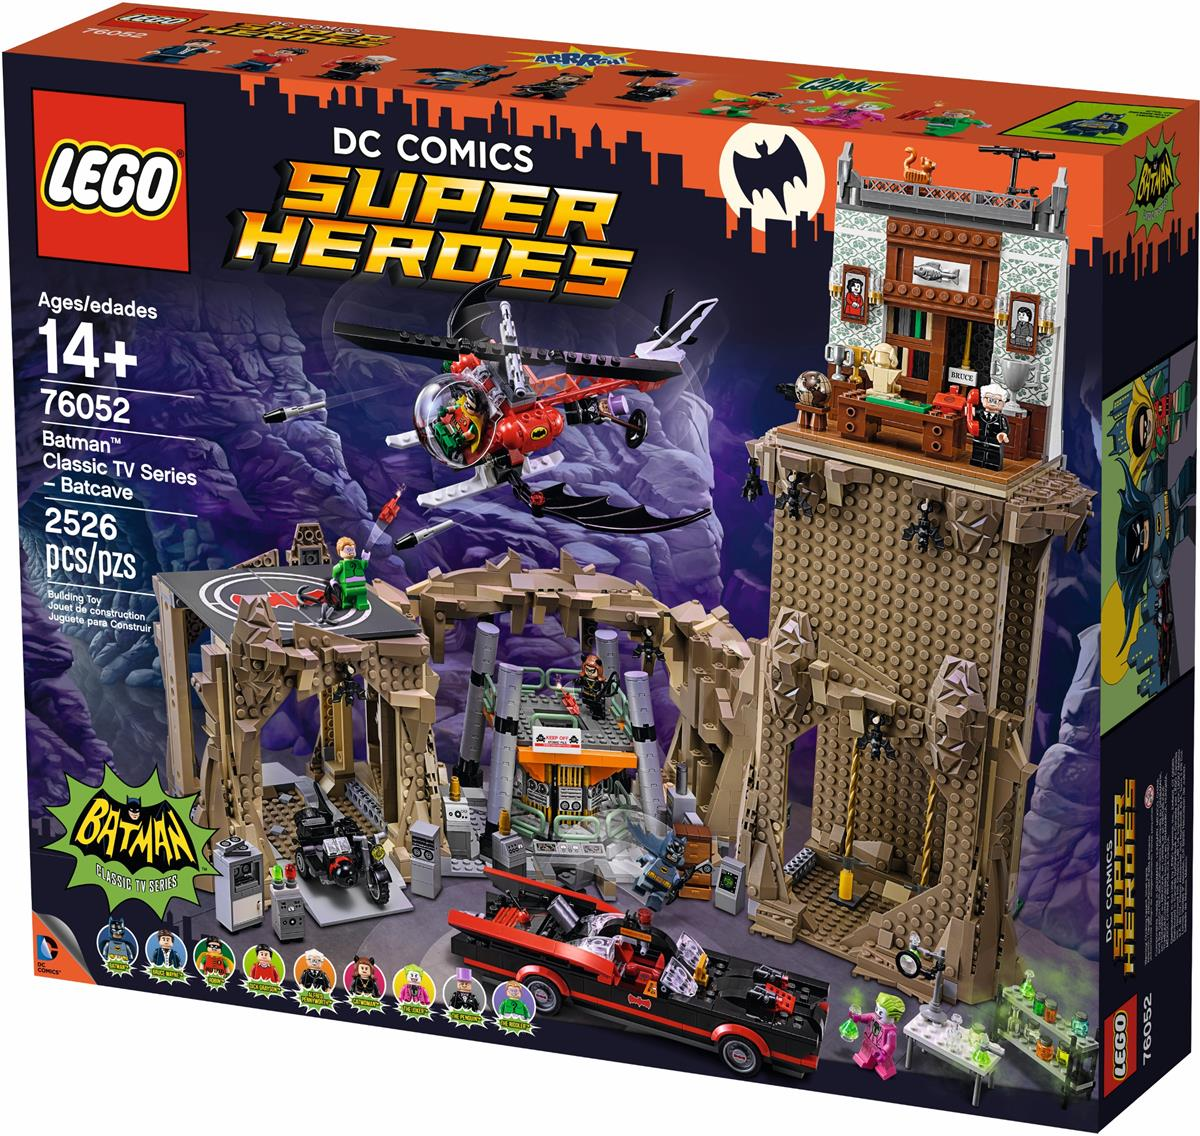 LEGO 76052 DC Super Heroes Batman Classic TV Series - Batcave NEW MISB